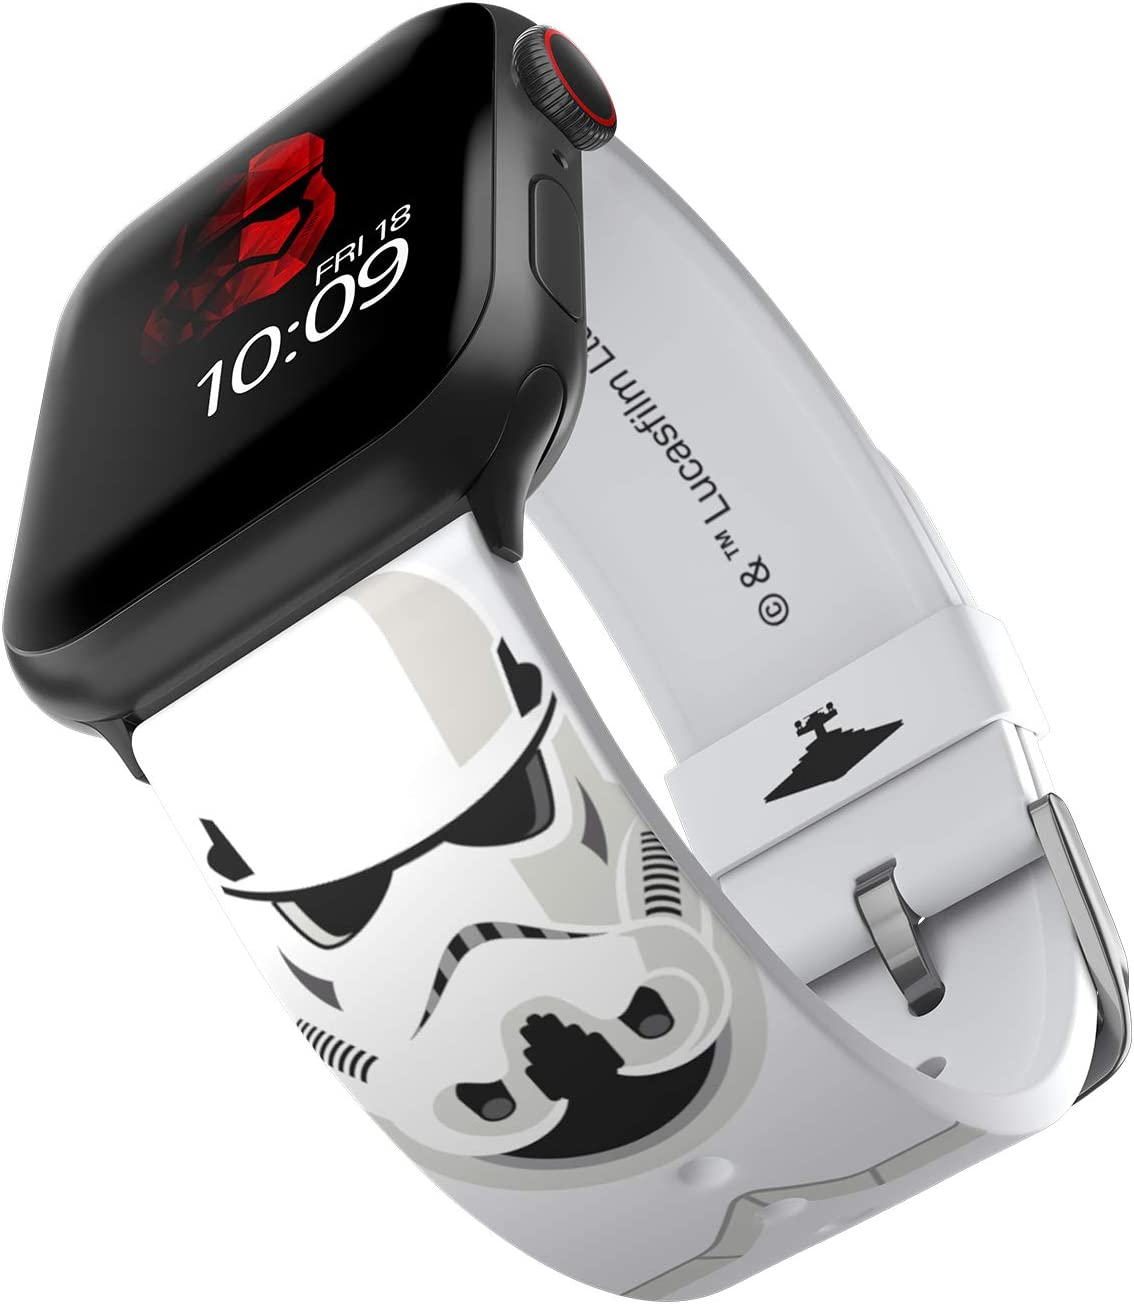 Star Wars - Stormtrooper Smartwatch Band – Officially Licensed, Compatible with Apple Watch (not included) – Fits 38mm, 40mm, 42mm and 44mm